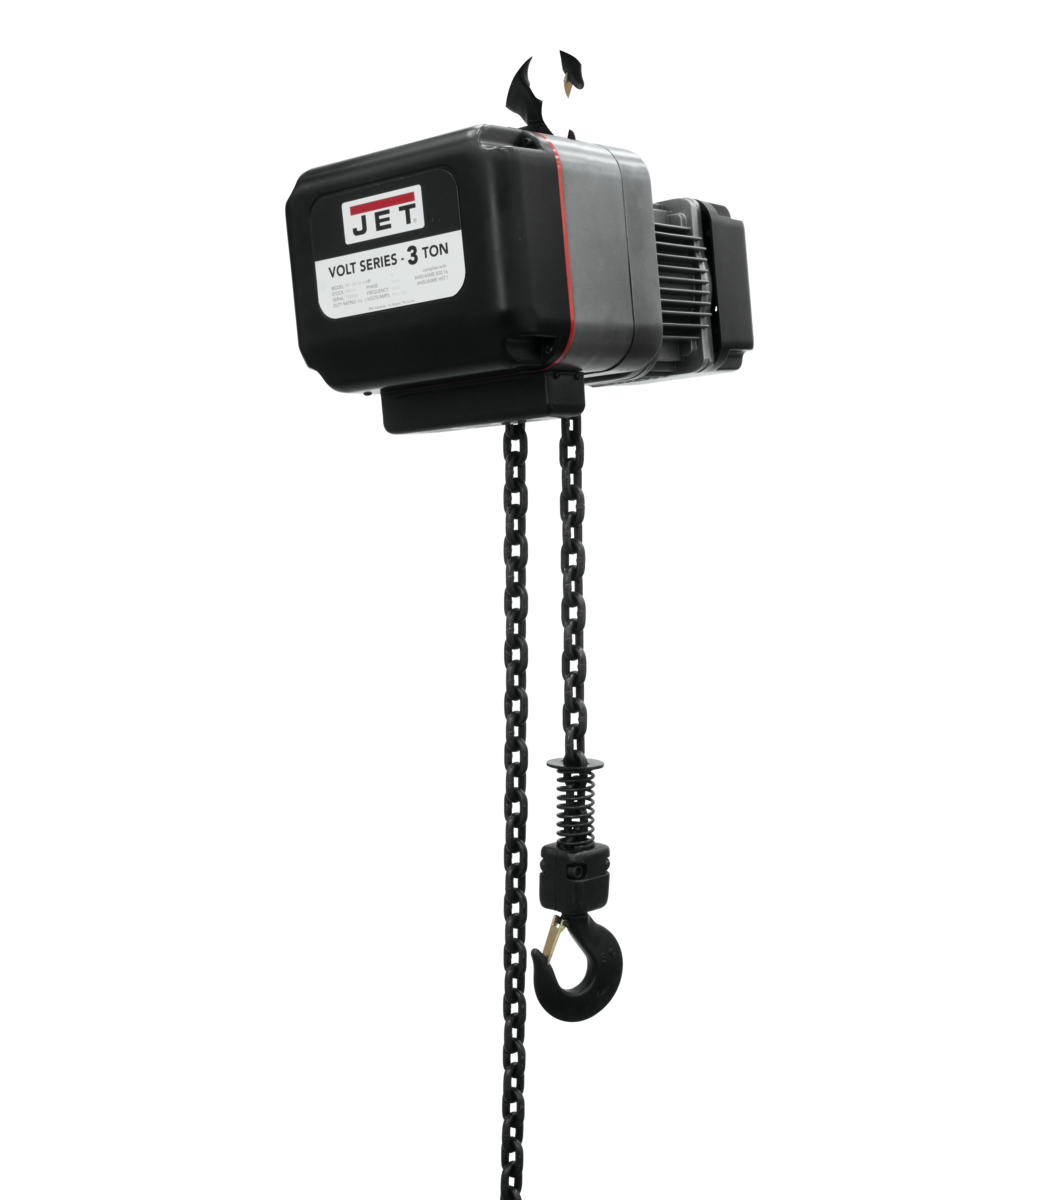 VOLT 3T VARIABLE-SPEED ELECTRIC HOIST  3PH 230V 10' LIFT